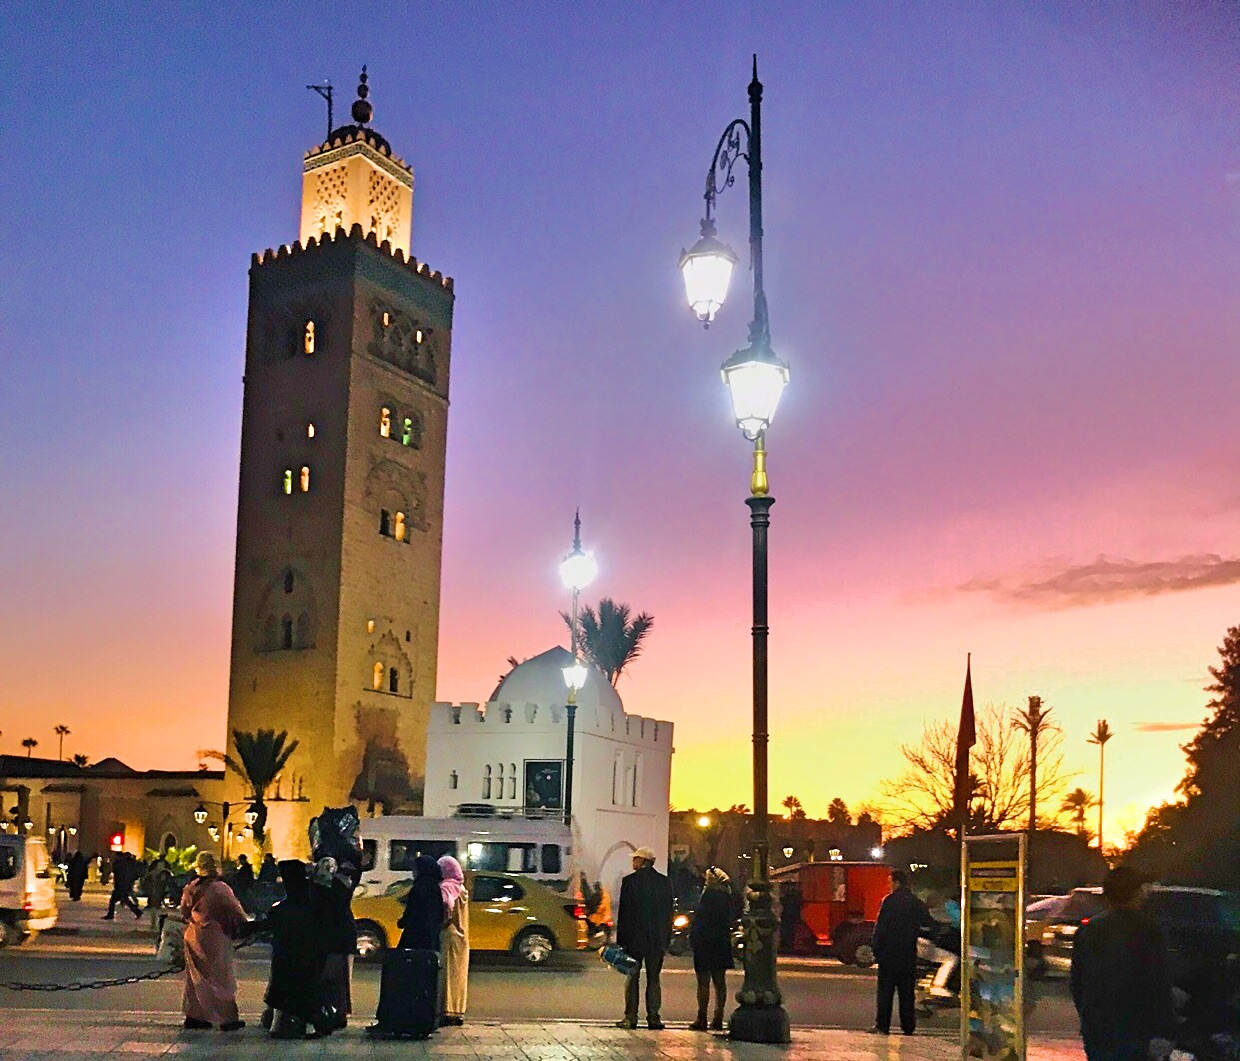 HALF-DAY GUIDED VISIT OF THE MARRAKECH MEDINA